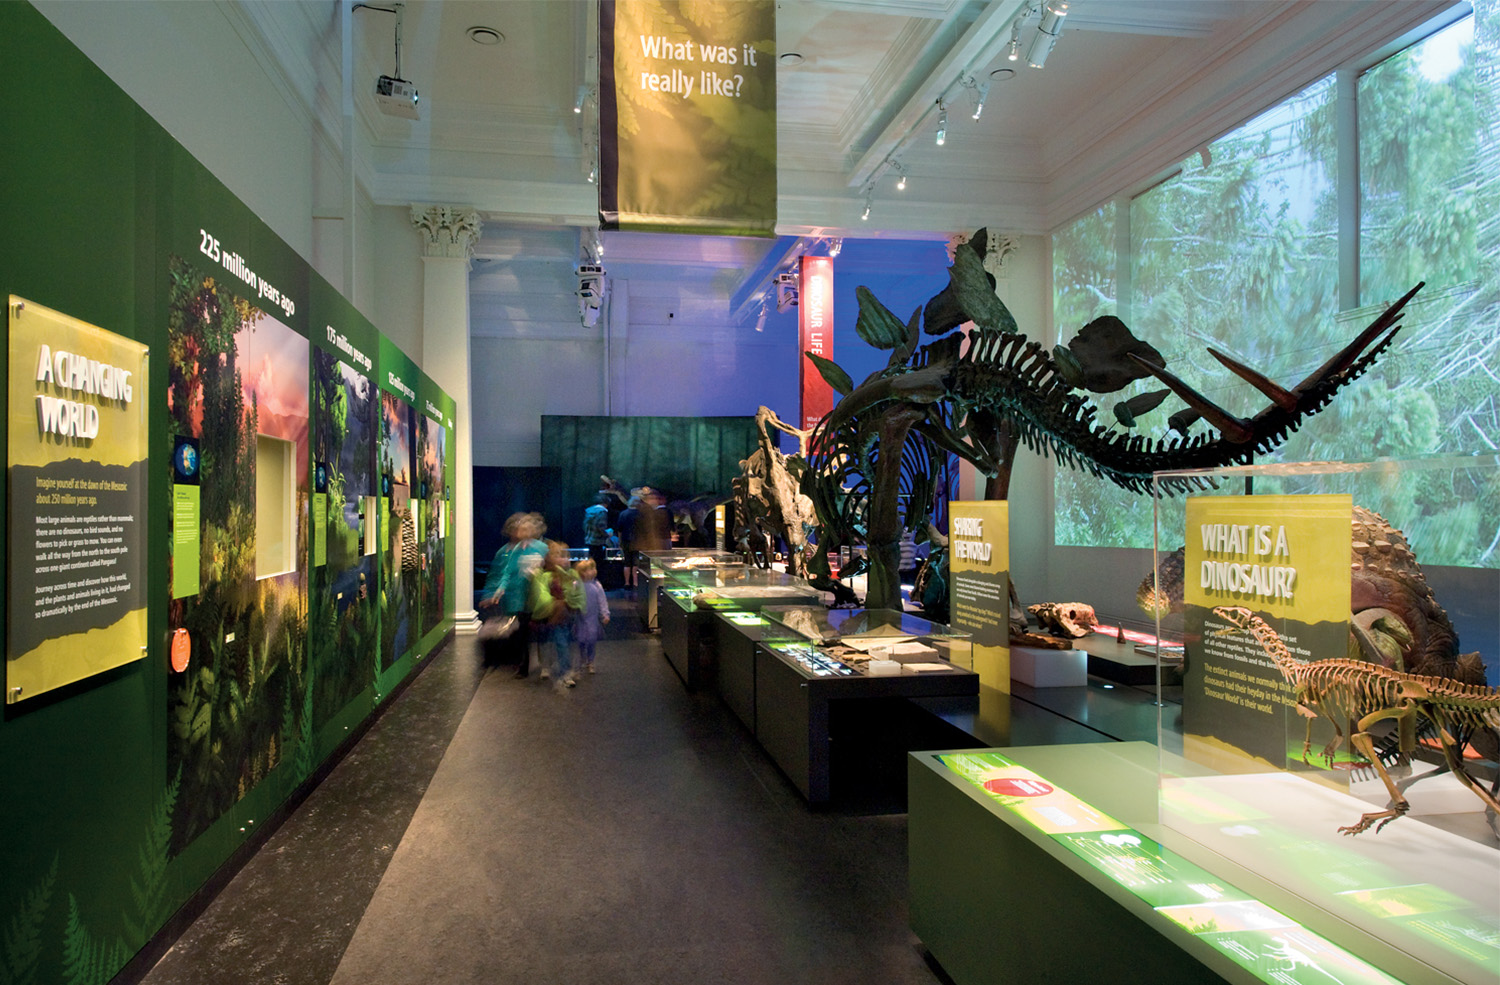 Large-scale video and computer-generated scenarios are projected upon the heritage walls, evoking the landscape upon which these creatures died and inducing an authentic context for these huge artefacts.